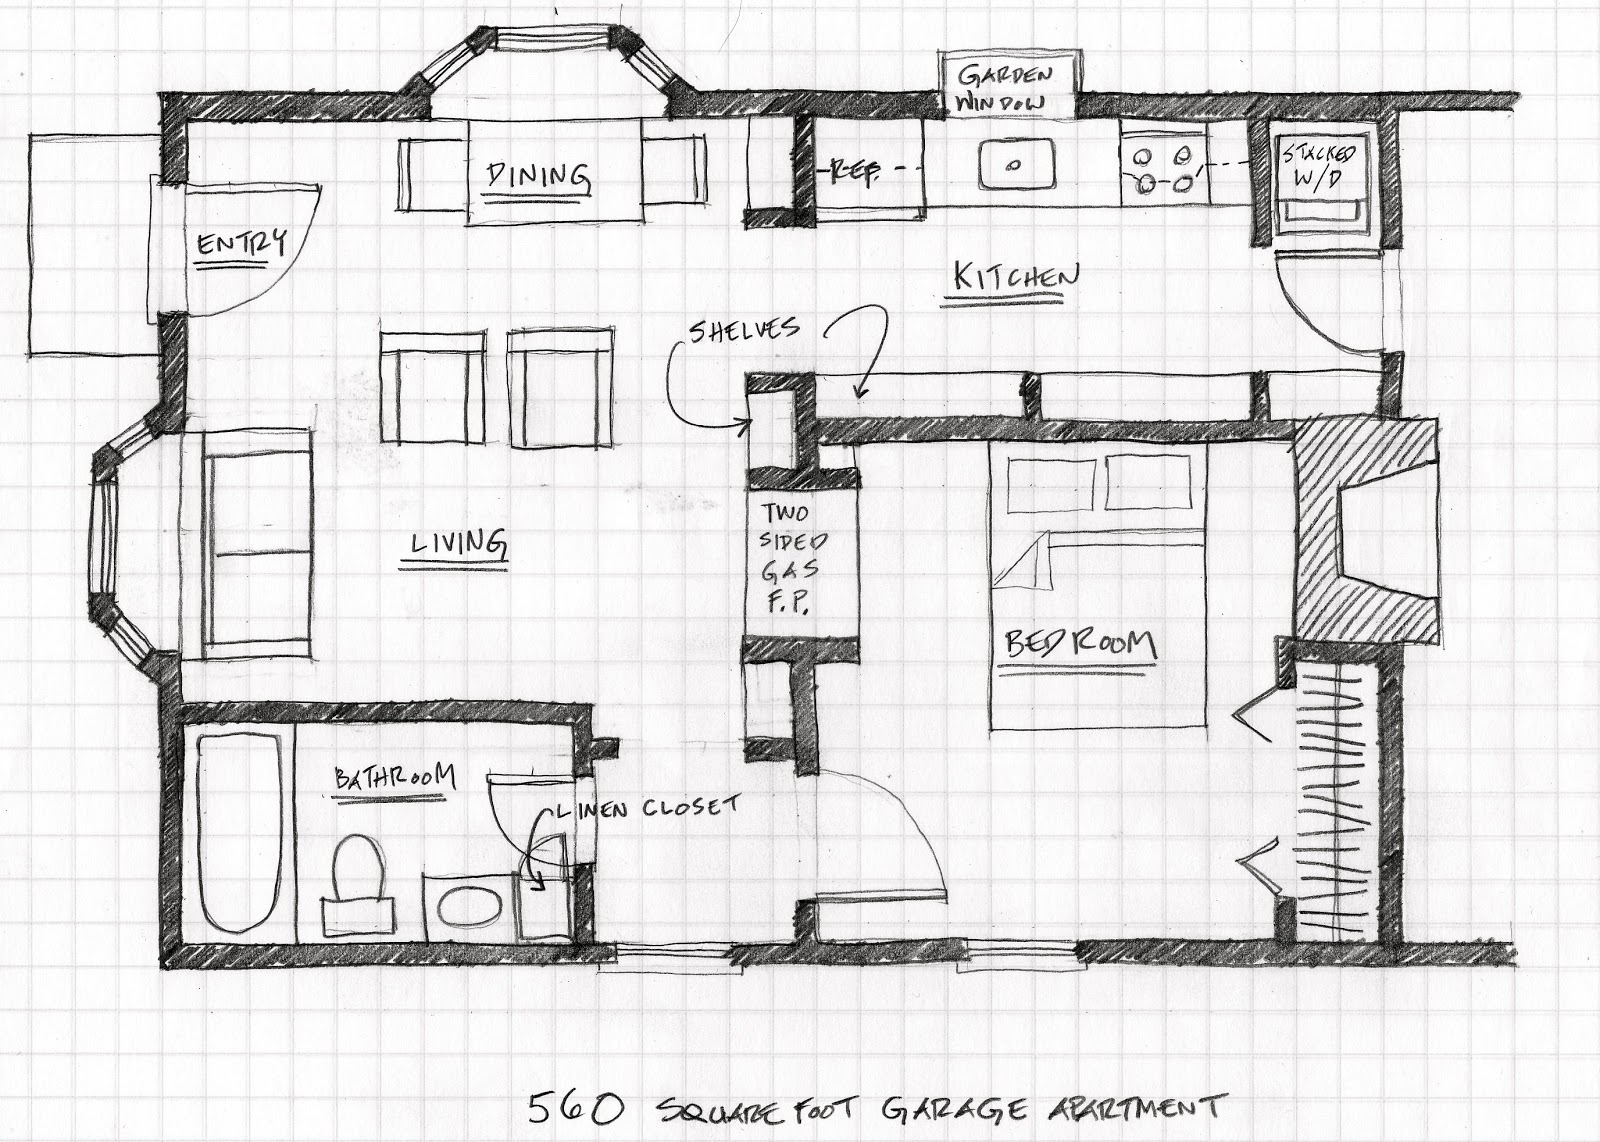 Small Garage Apartment Plans Of Small Scale Homes Floor Plans For Garage To Apartment